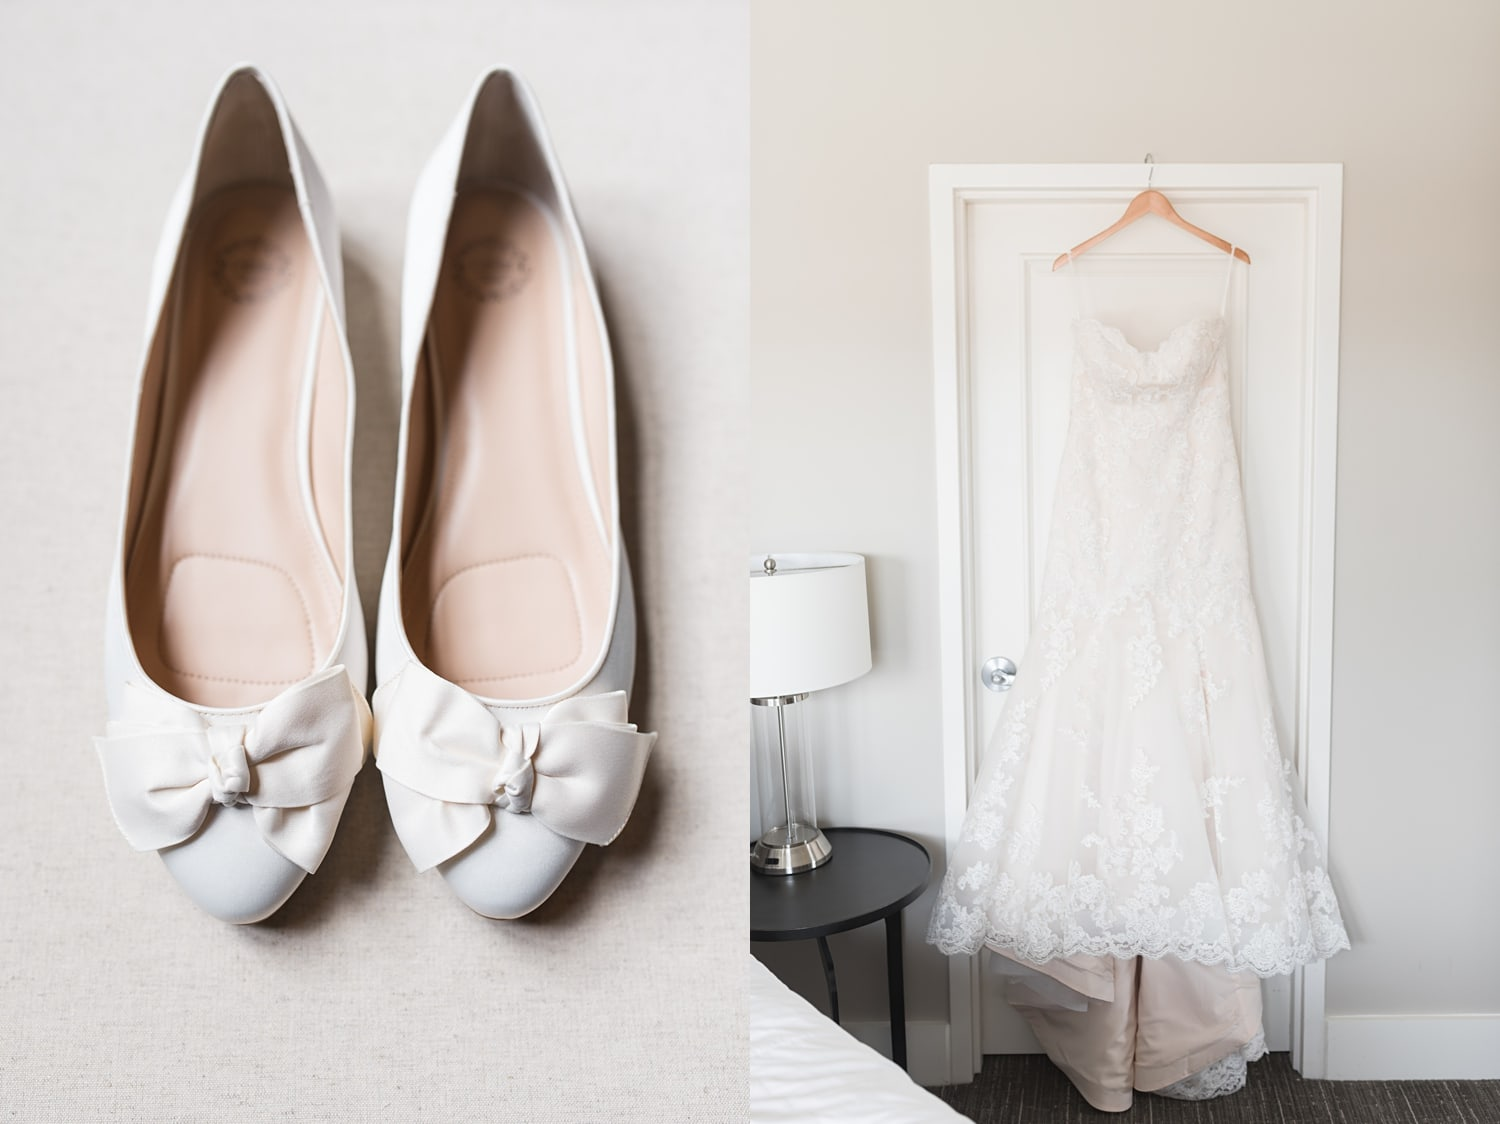 des moines temple for performing arts wedding details